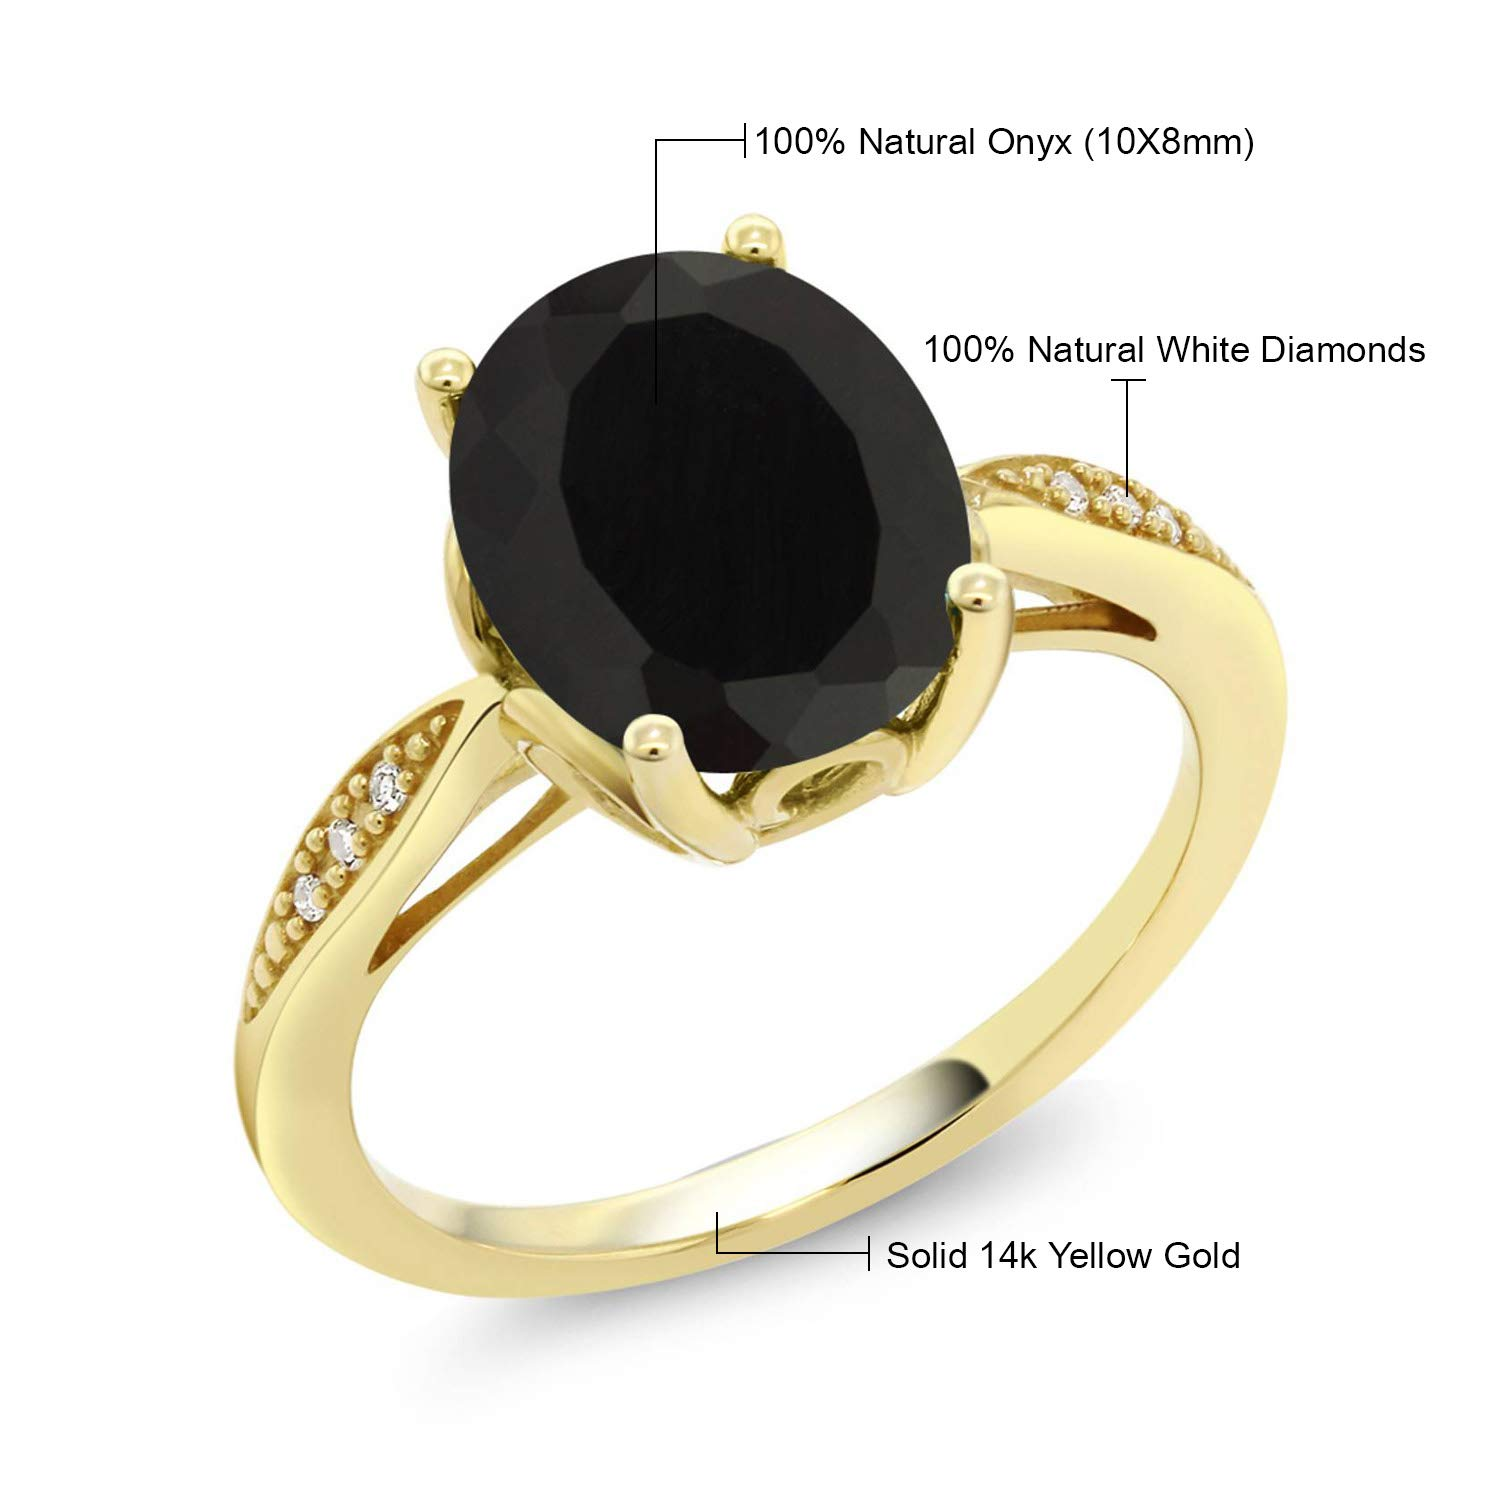 d4a56376adf10 Gem Stone King 14K Yellow Gold Black Onyx and Diamond Women's Ring 2.54 Ct  Oval (Available 5,6,7,8,9)